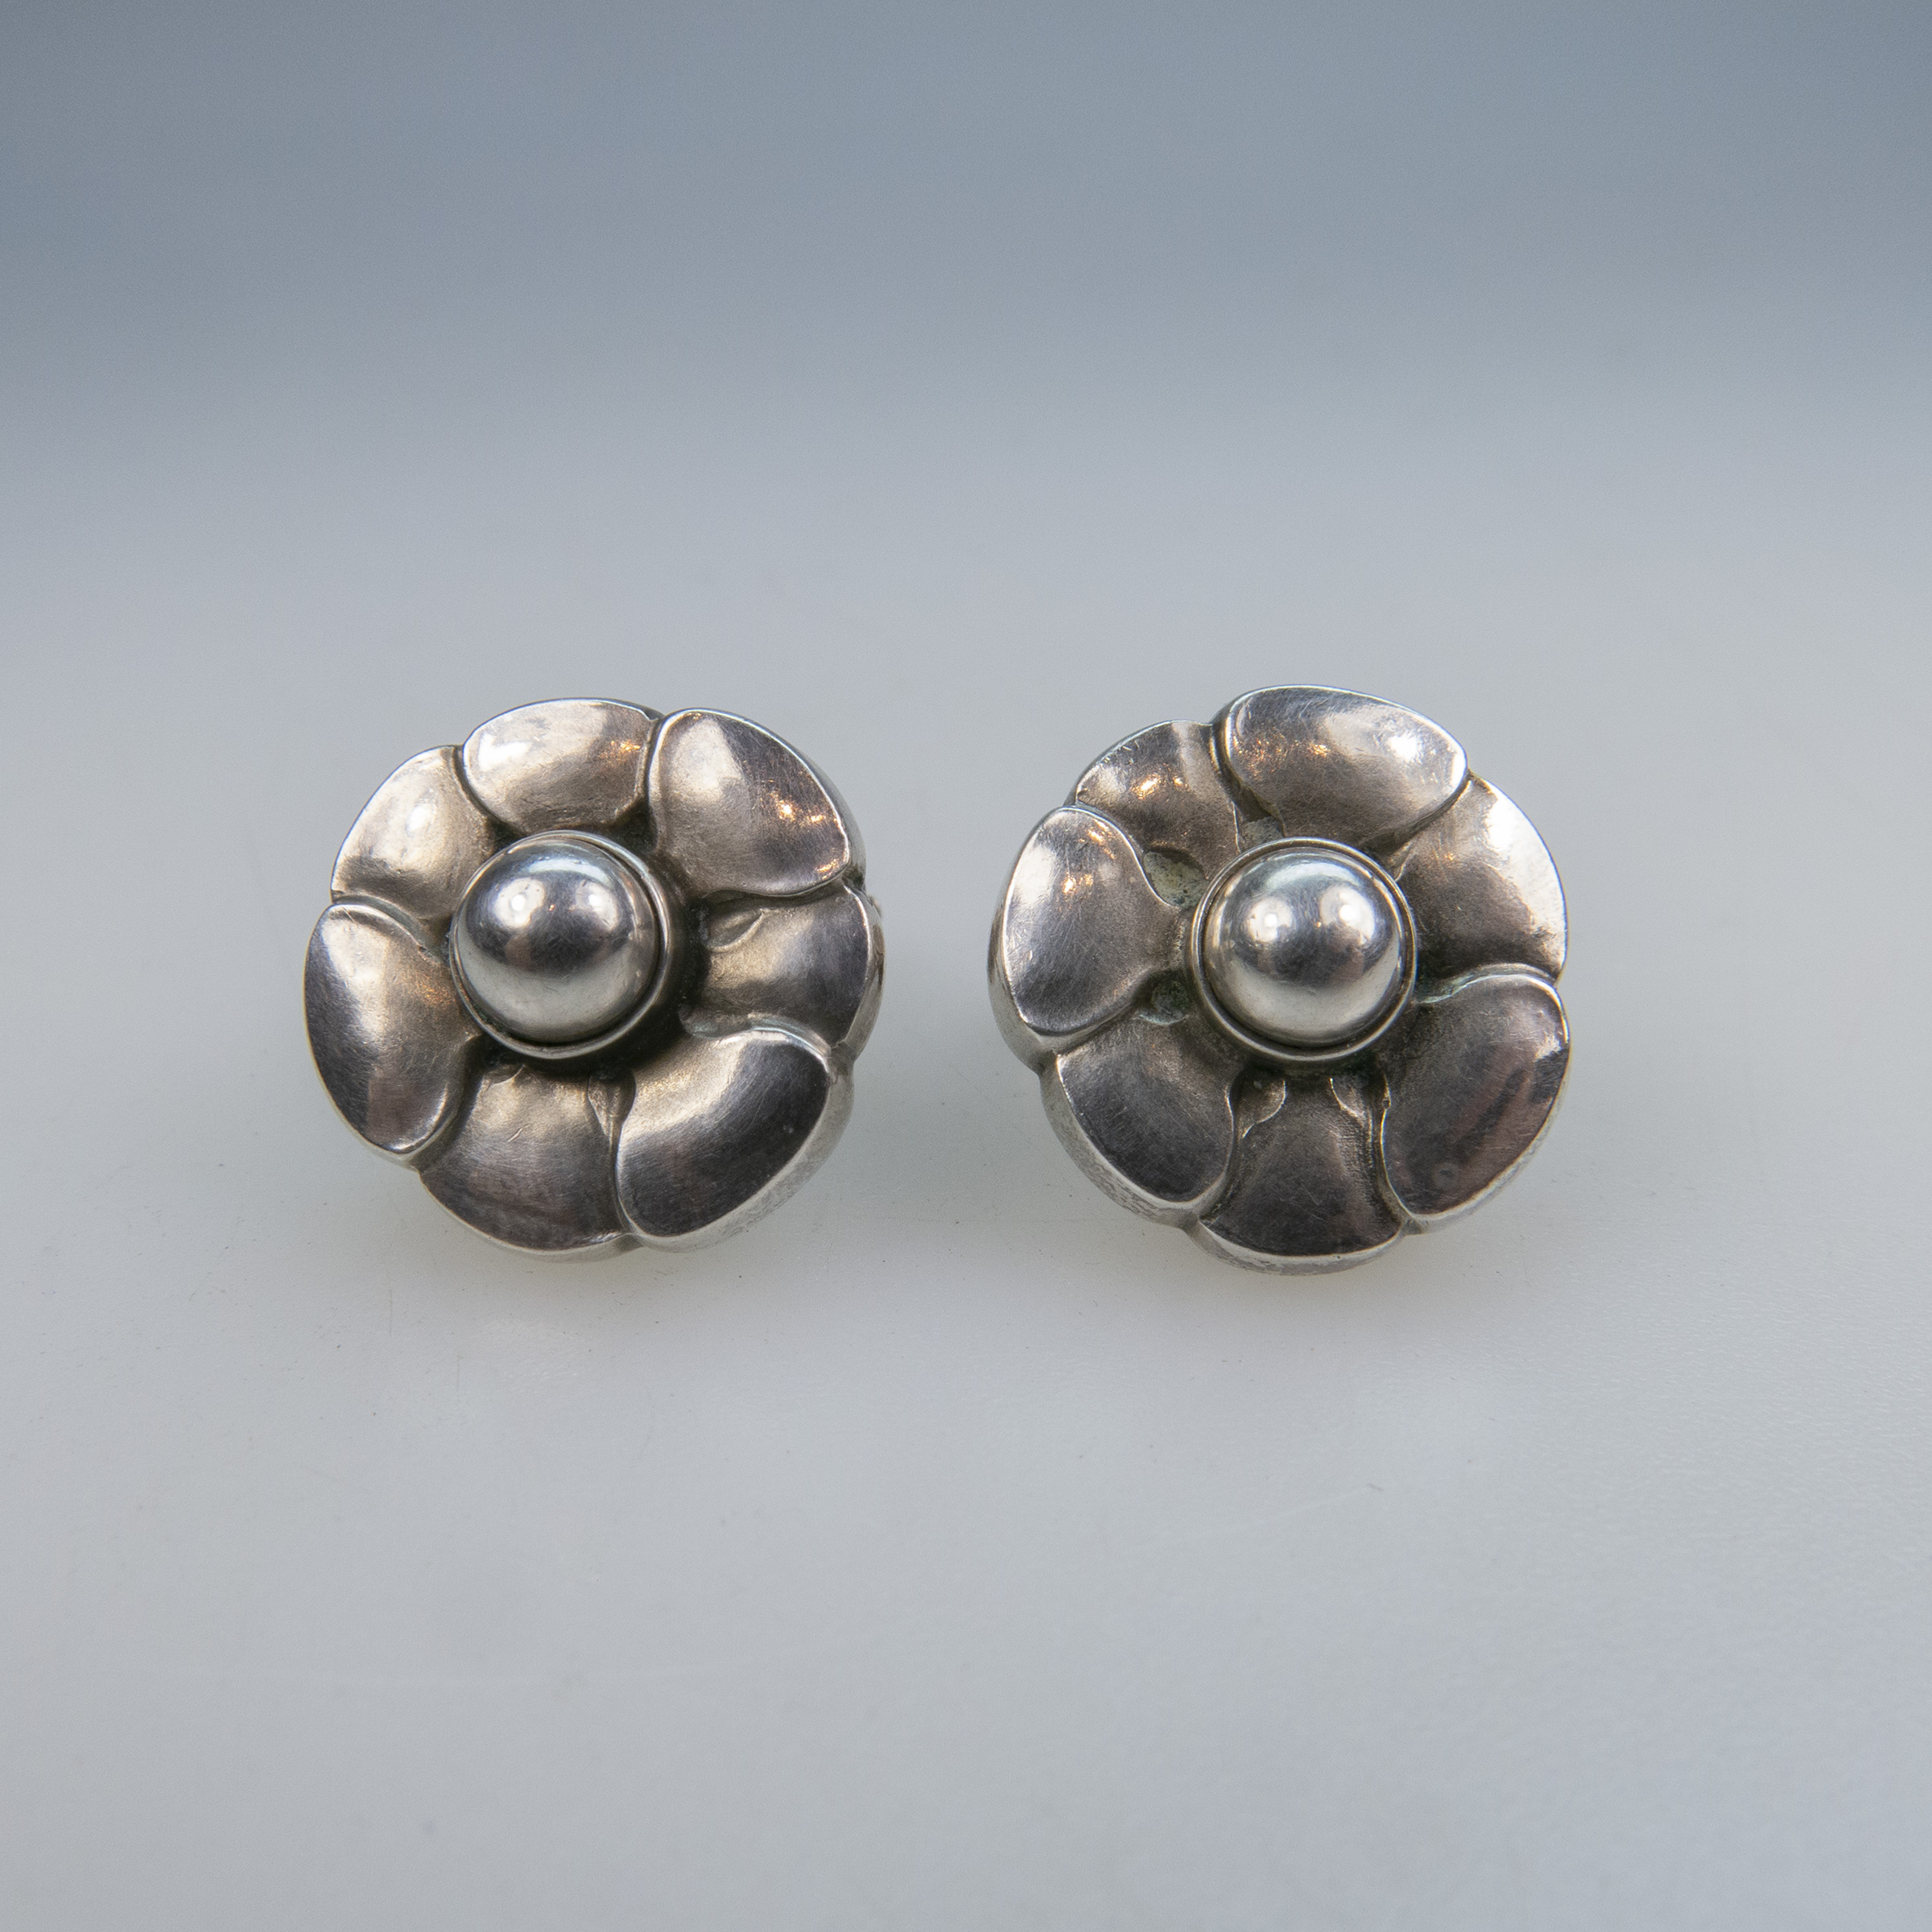 Pair Of Georg Jensen Danish Sterling Silver Screwback Earrings